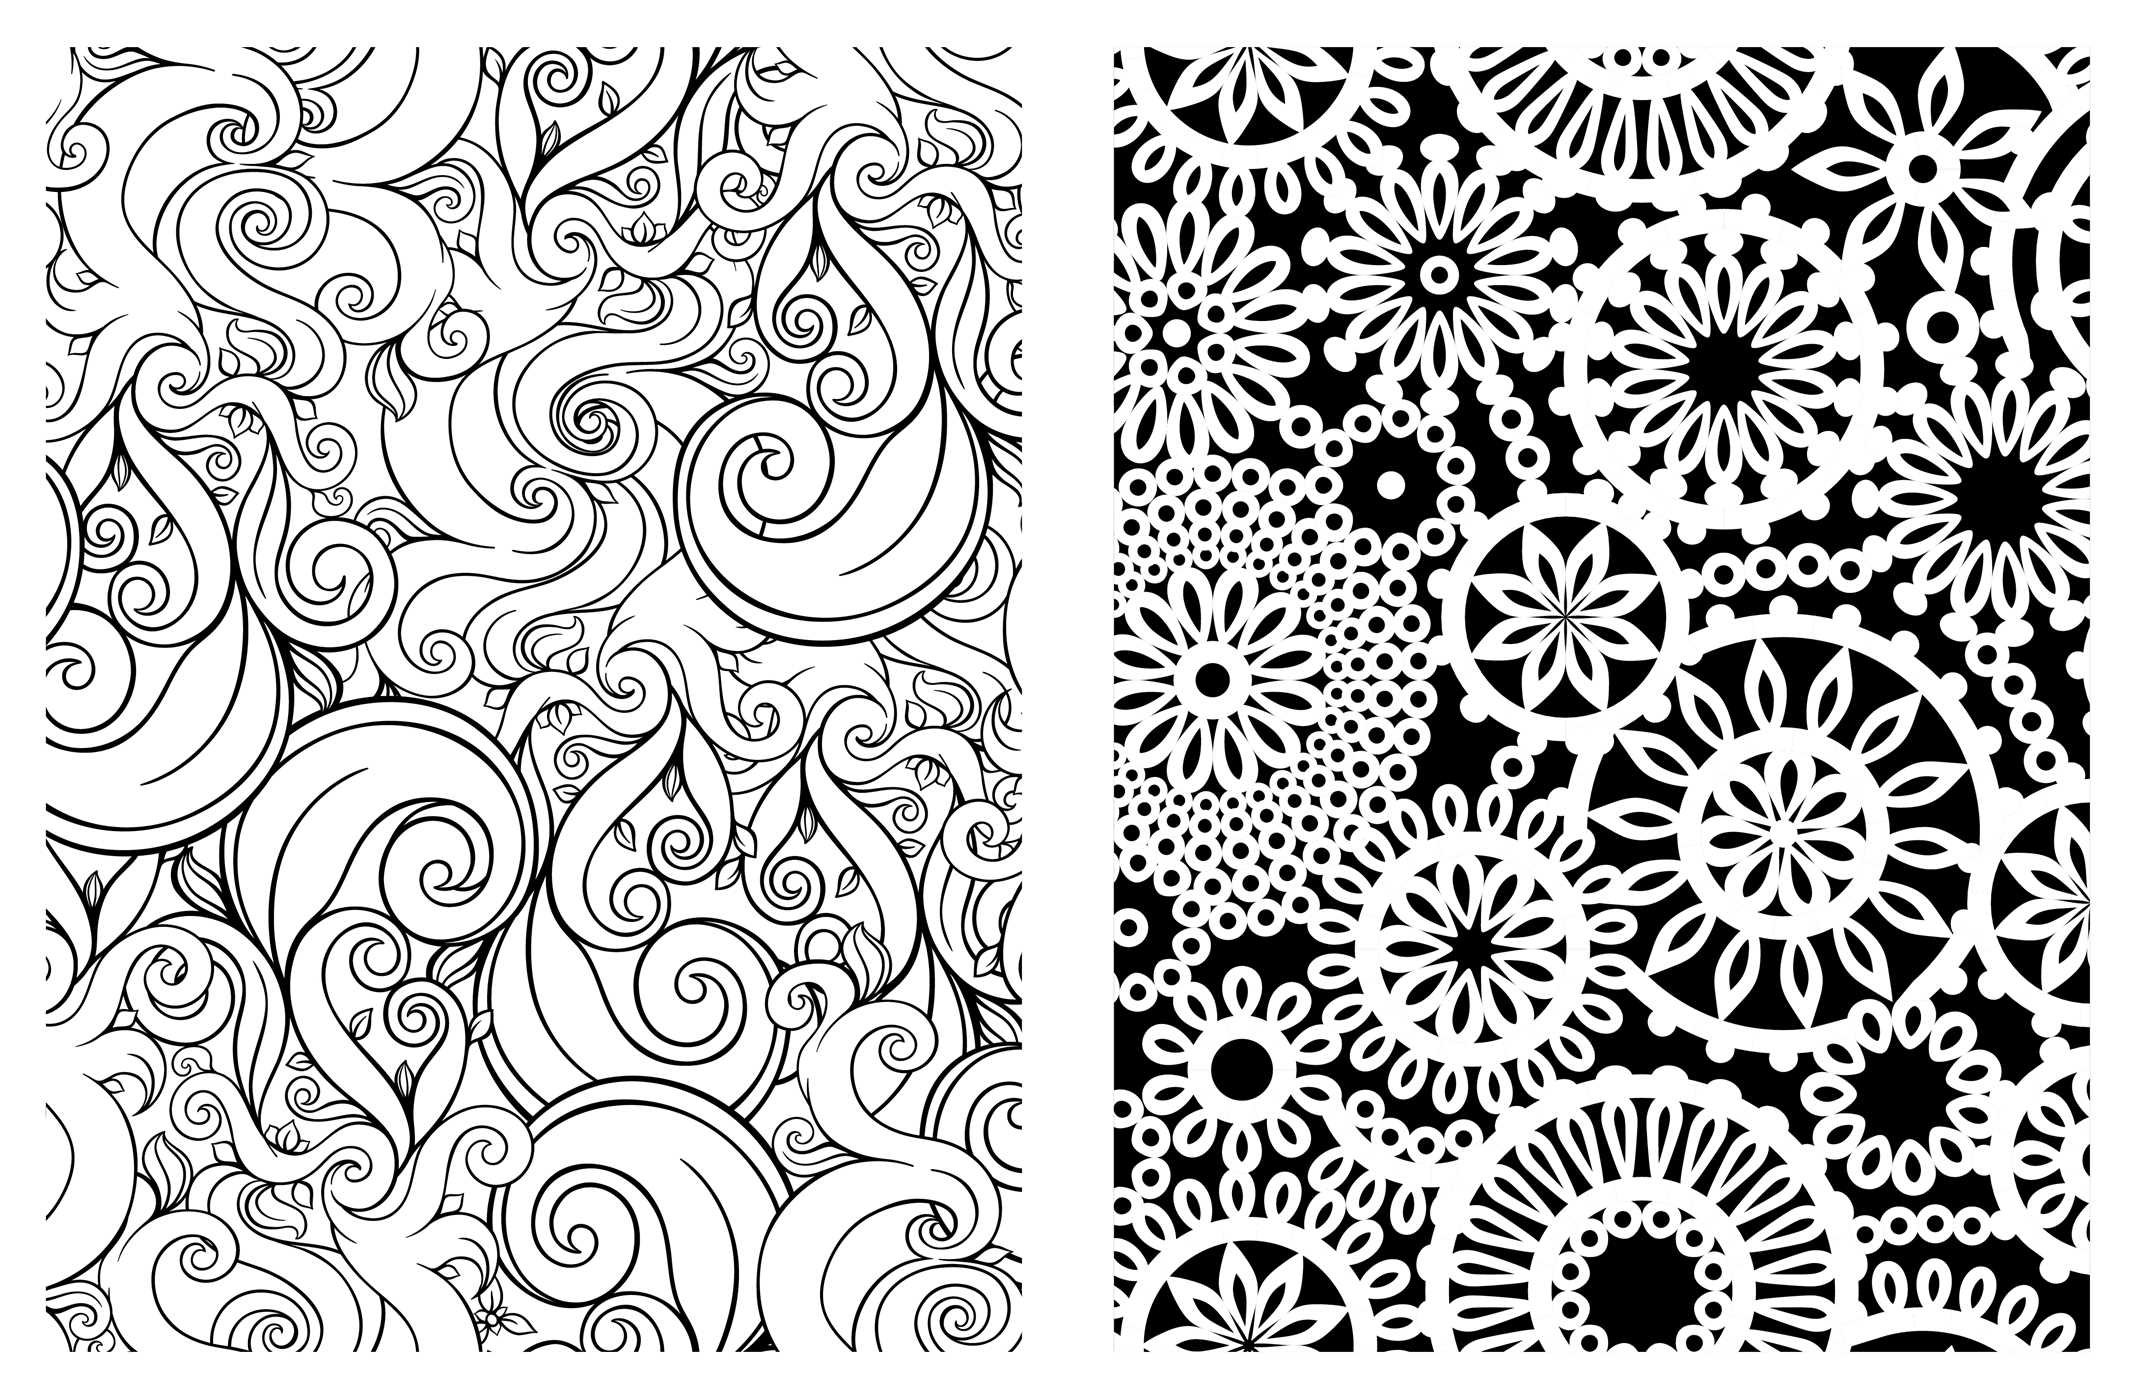 amazon com posh coloring book pretty designs for fun